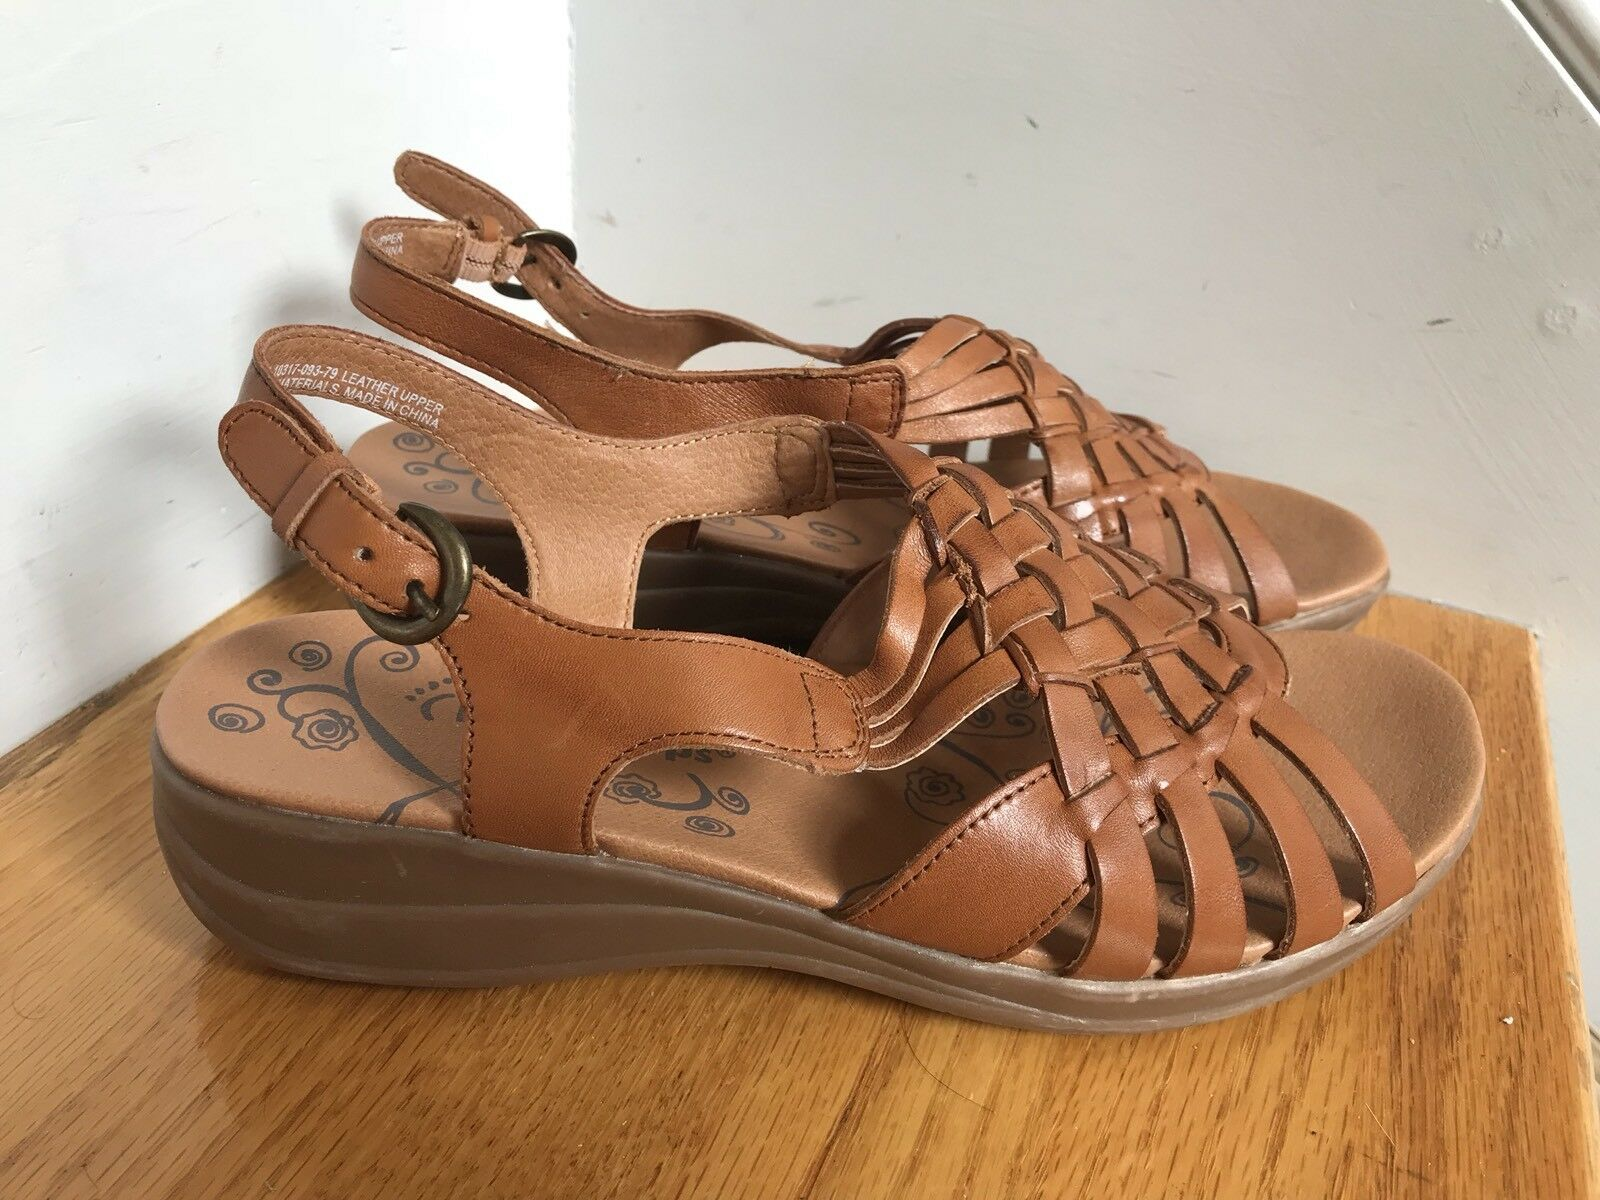 Bare Traps Sandals Jabber  Condition Size 6W leather Excellent Condition  061203